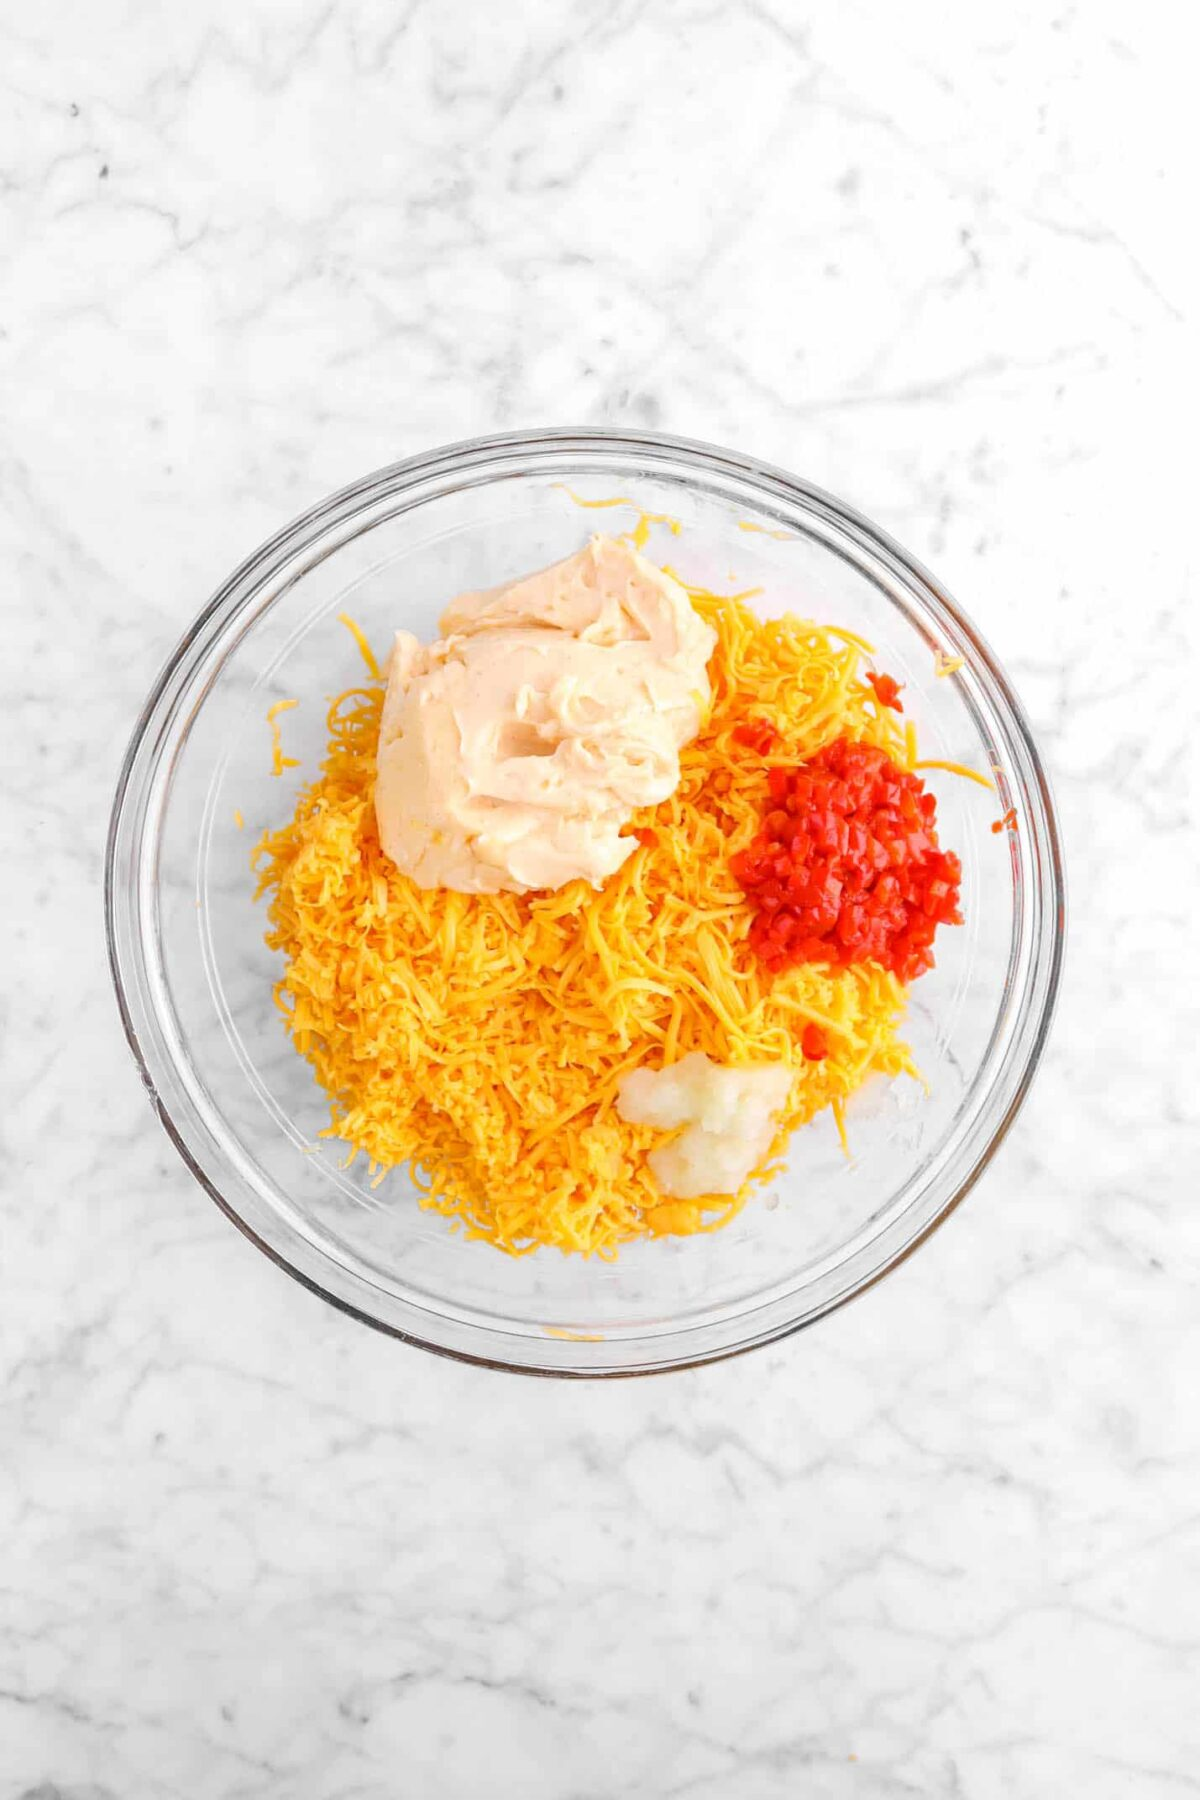 cheddar cheese, mayo, pimento and grated onion in a glass bowl